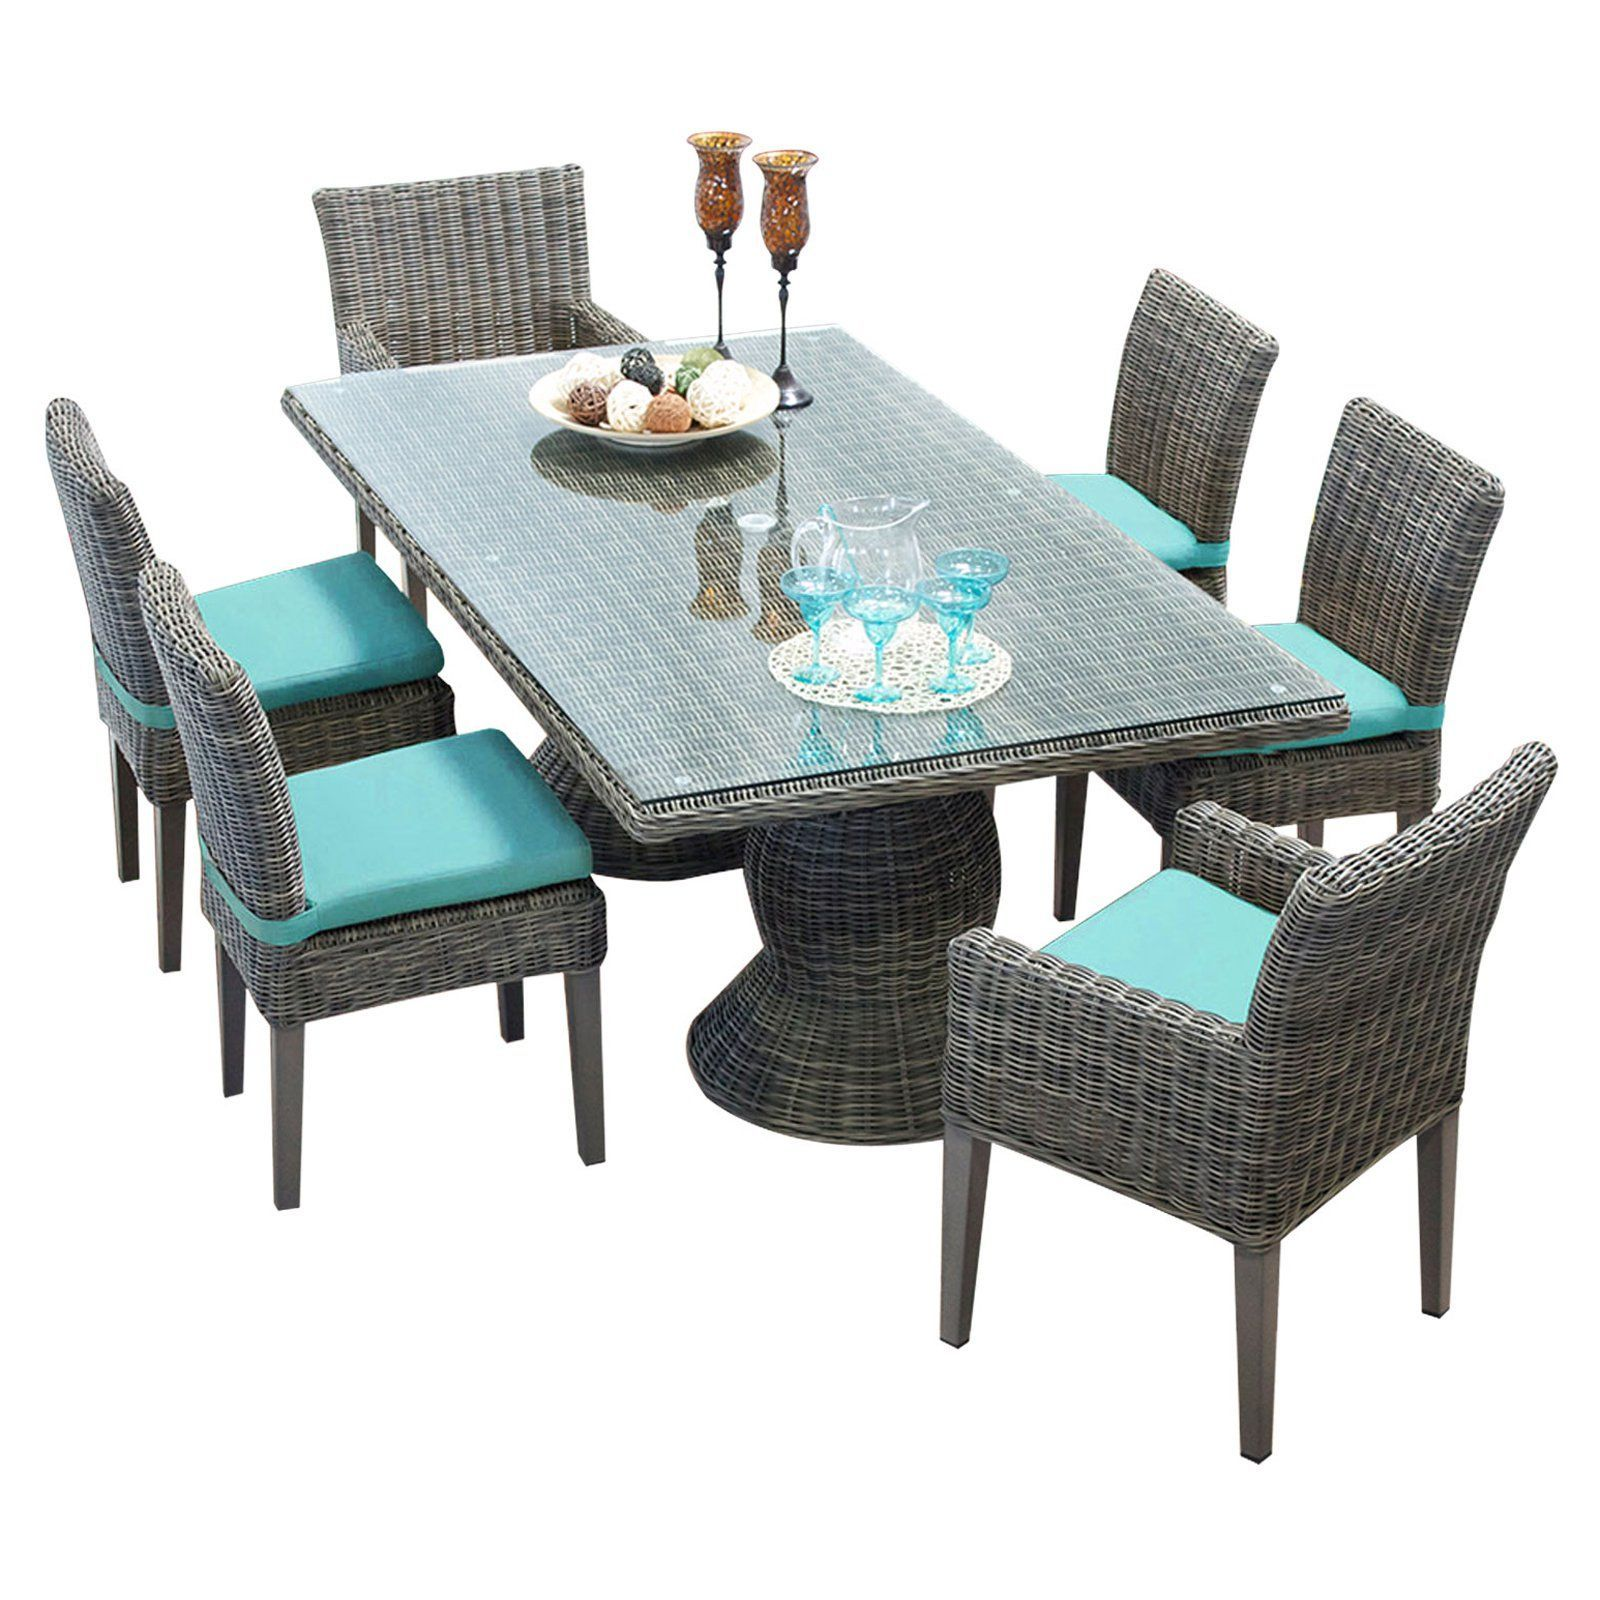 TK Classics Cape Cod Wicker 7 Piece Rectangular Patio Dining Set with 12 Cushion Covers | from ...